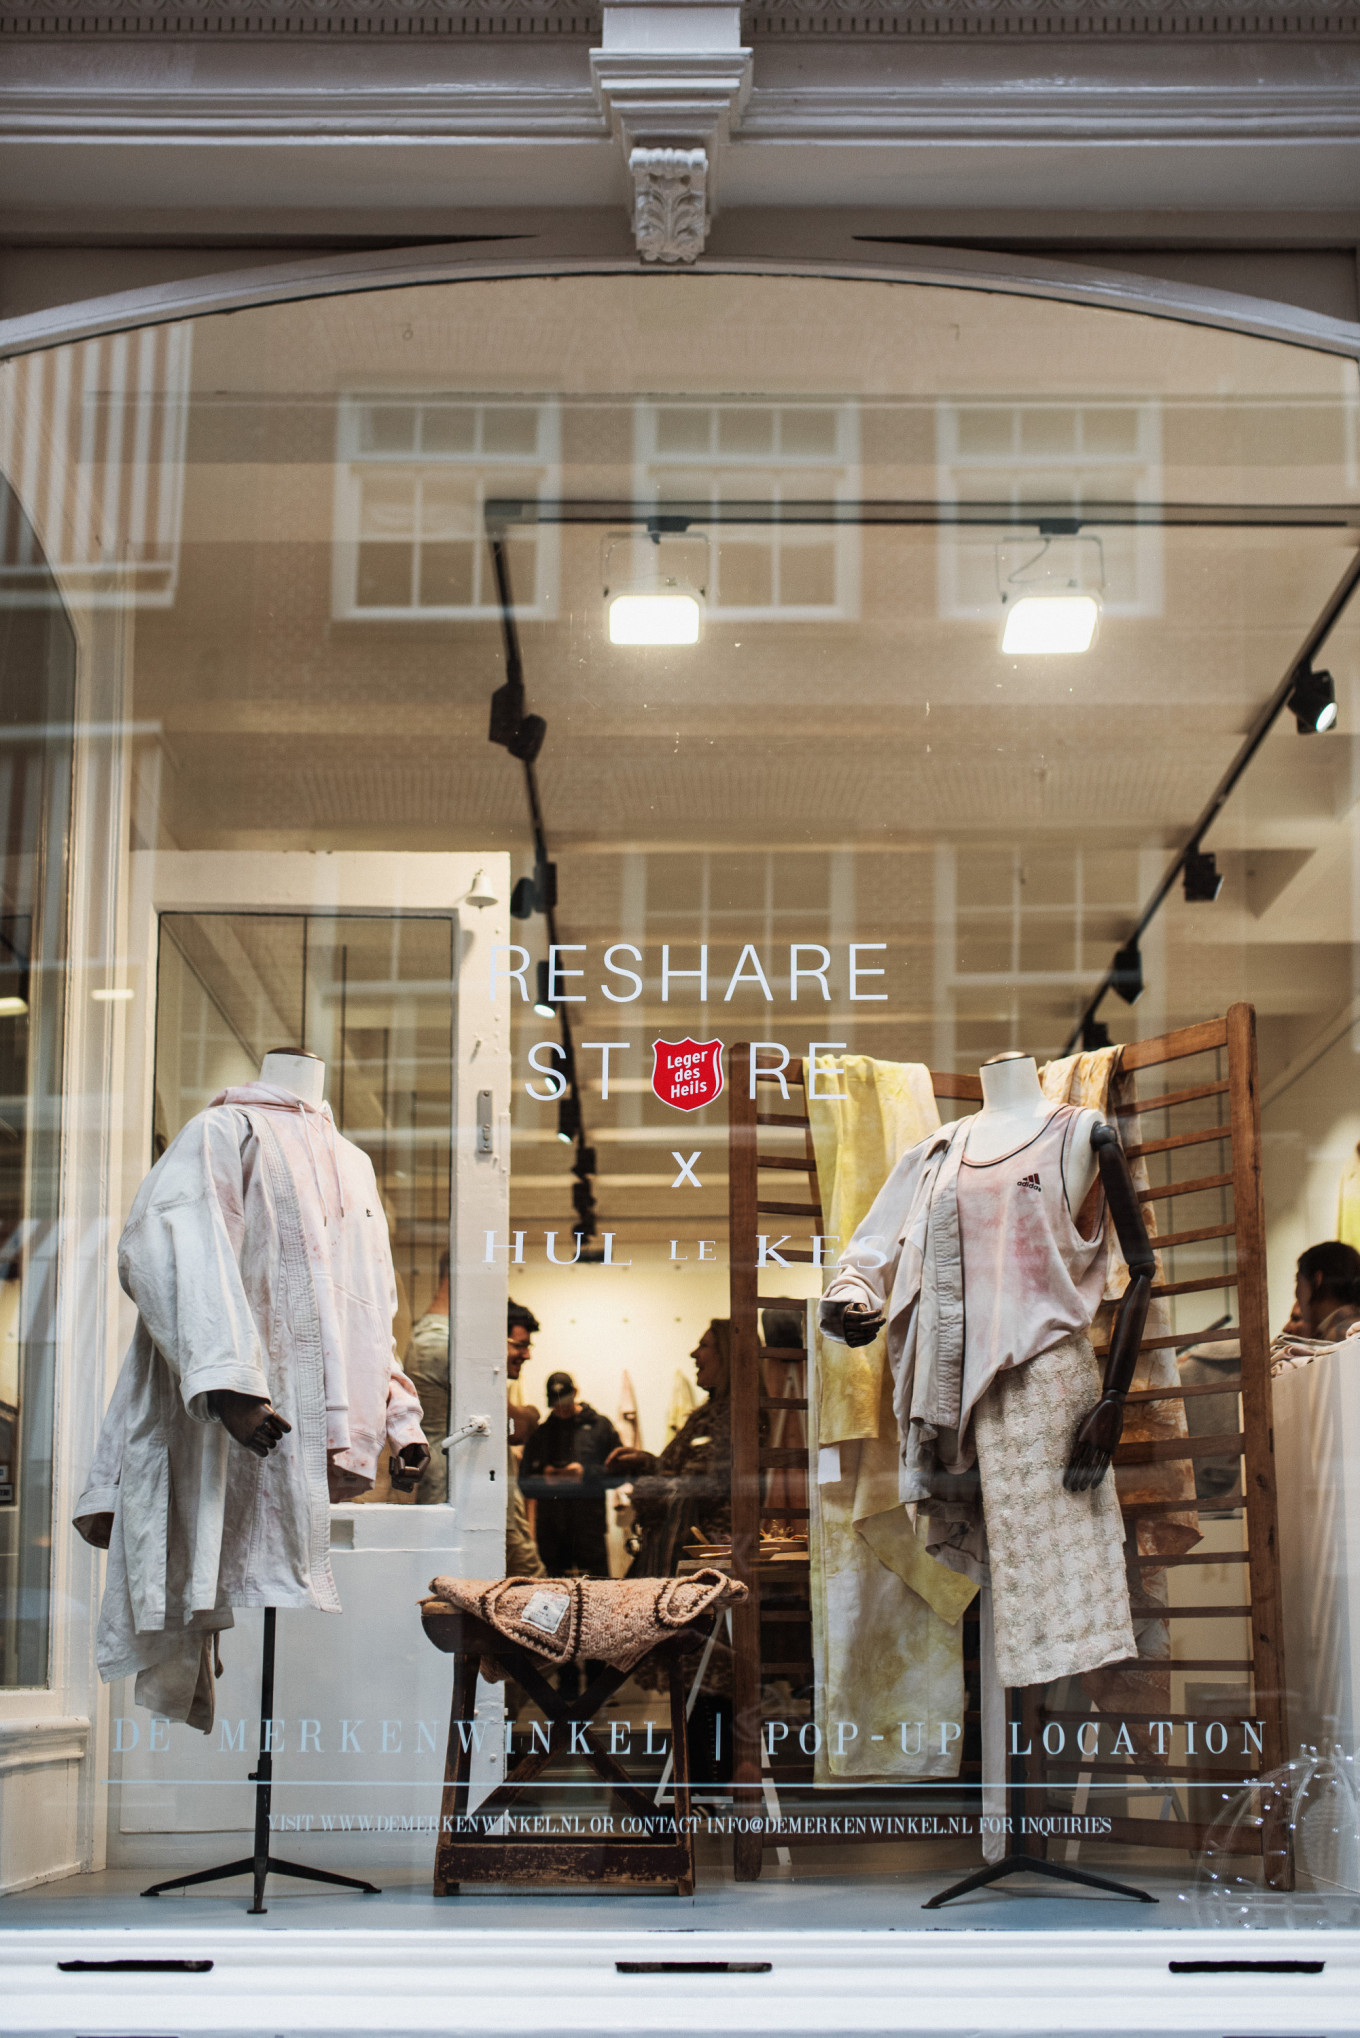 De pop-up ReShare Store X Hul le Kes in Amsterdam.